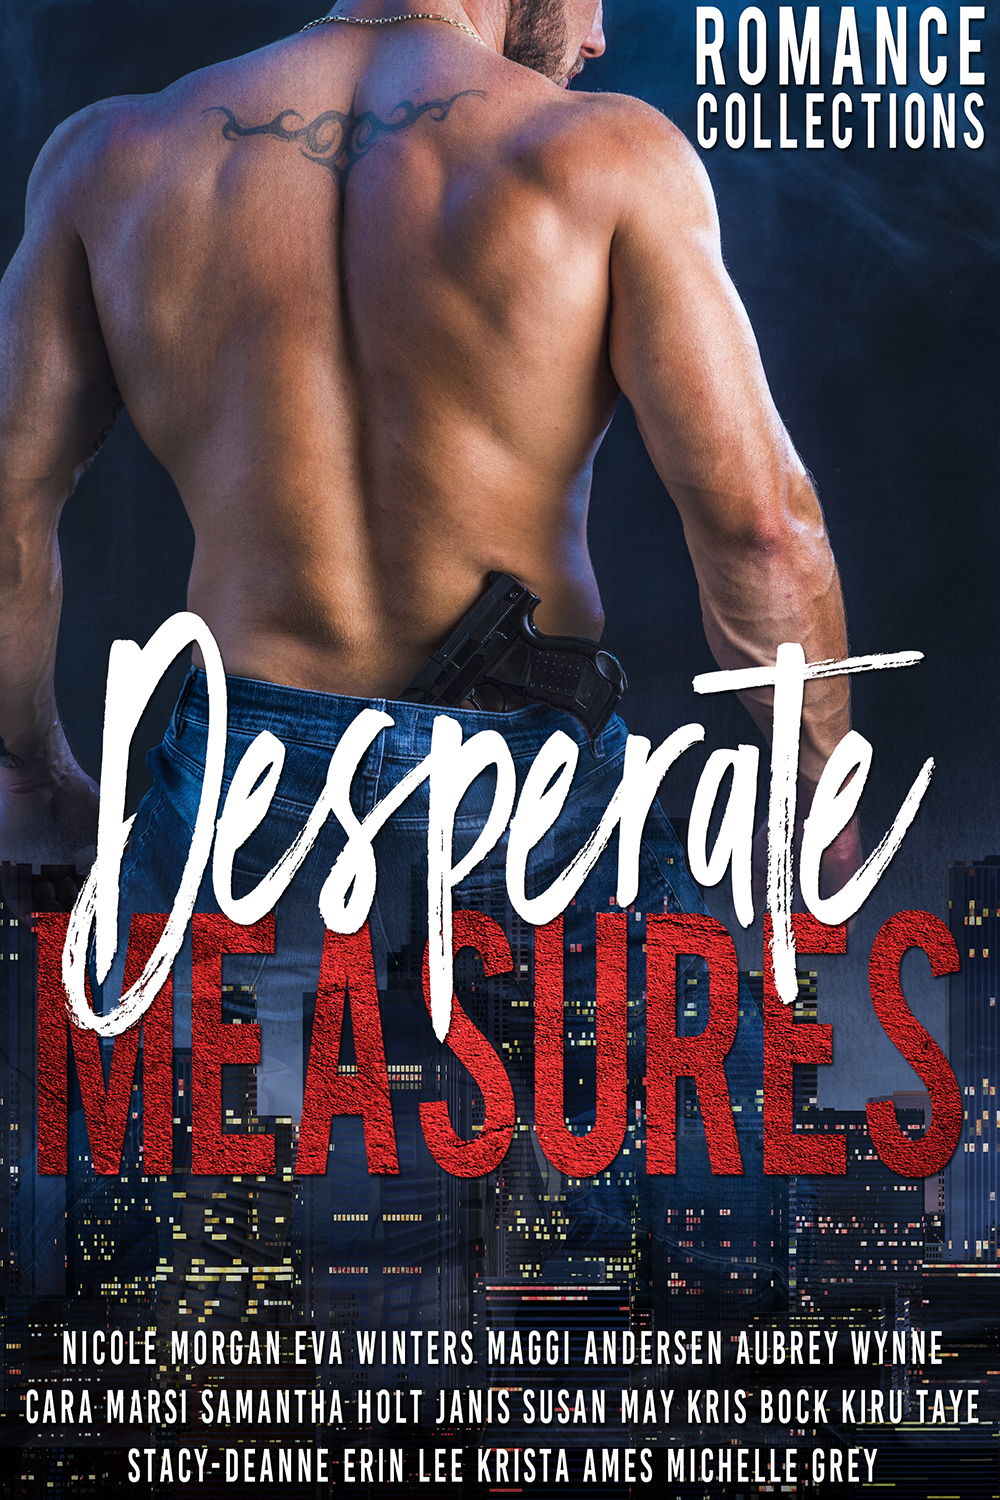 Desperate Measures: Romance Collections